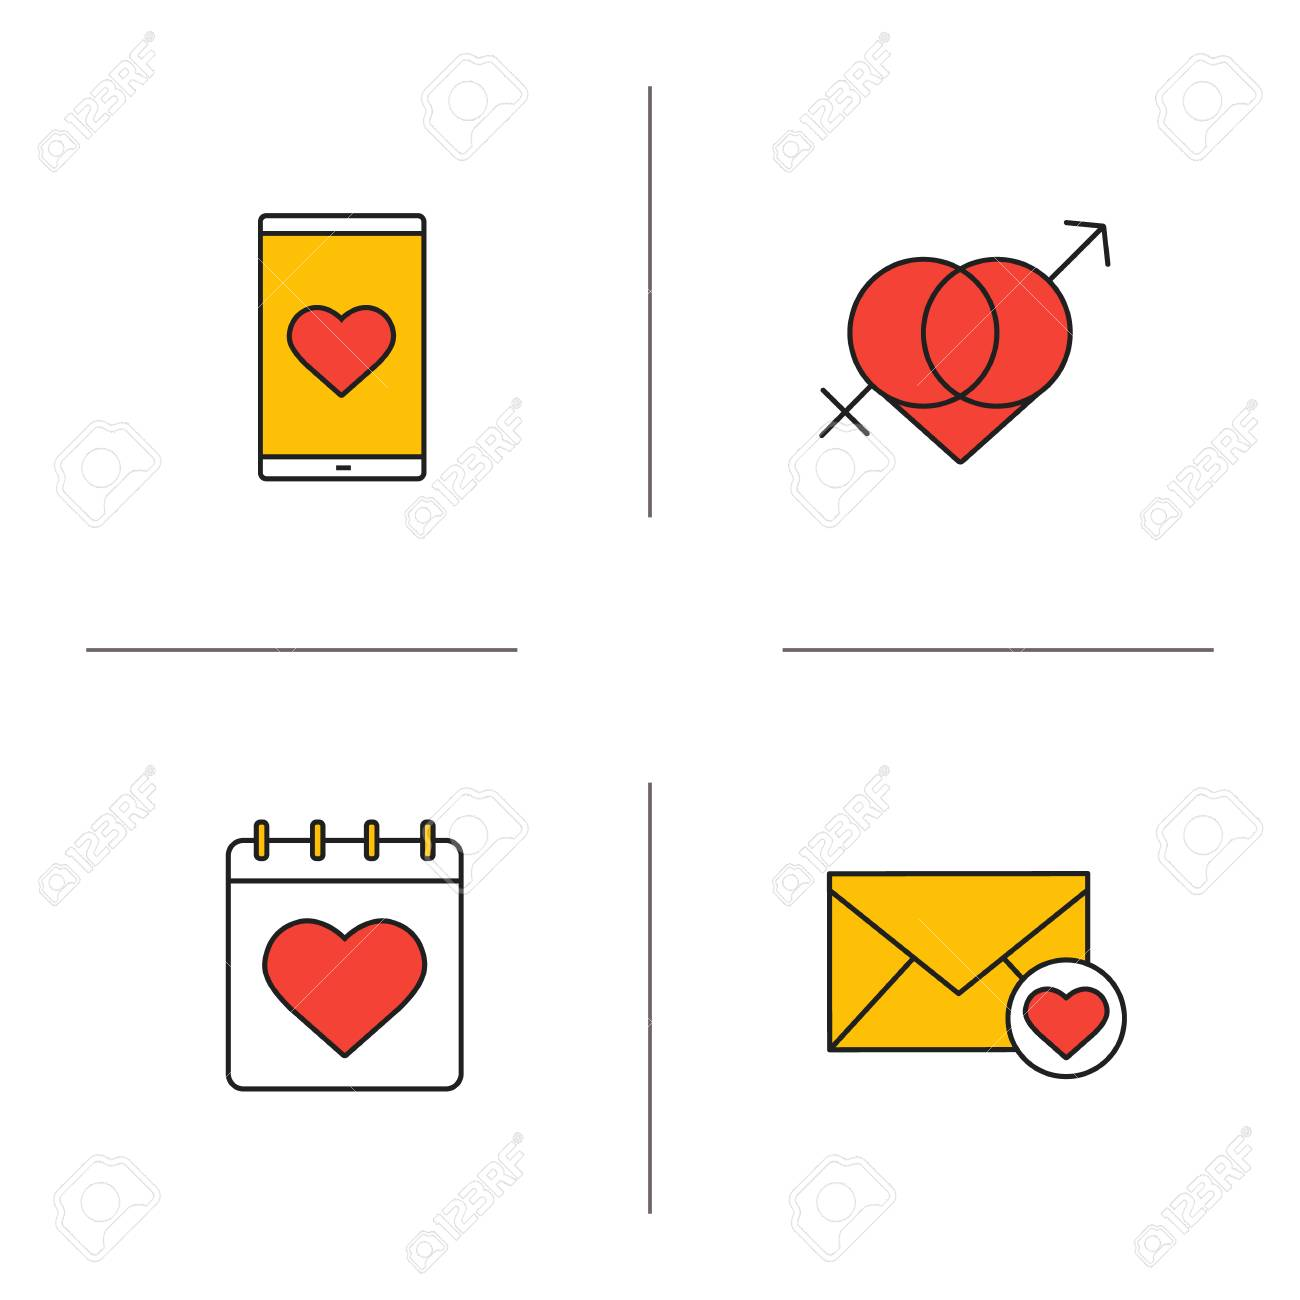 Valentines day color icons set february 14 calendar smartphone valentines day color icons set february 14 calendar smartphone dating app love letter buycottarizona Gallery